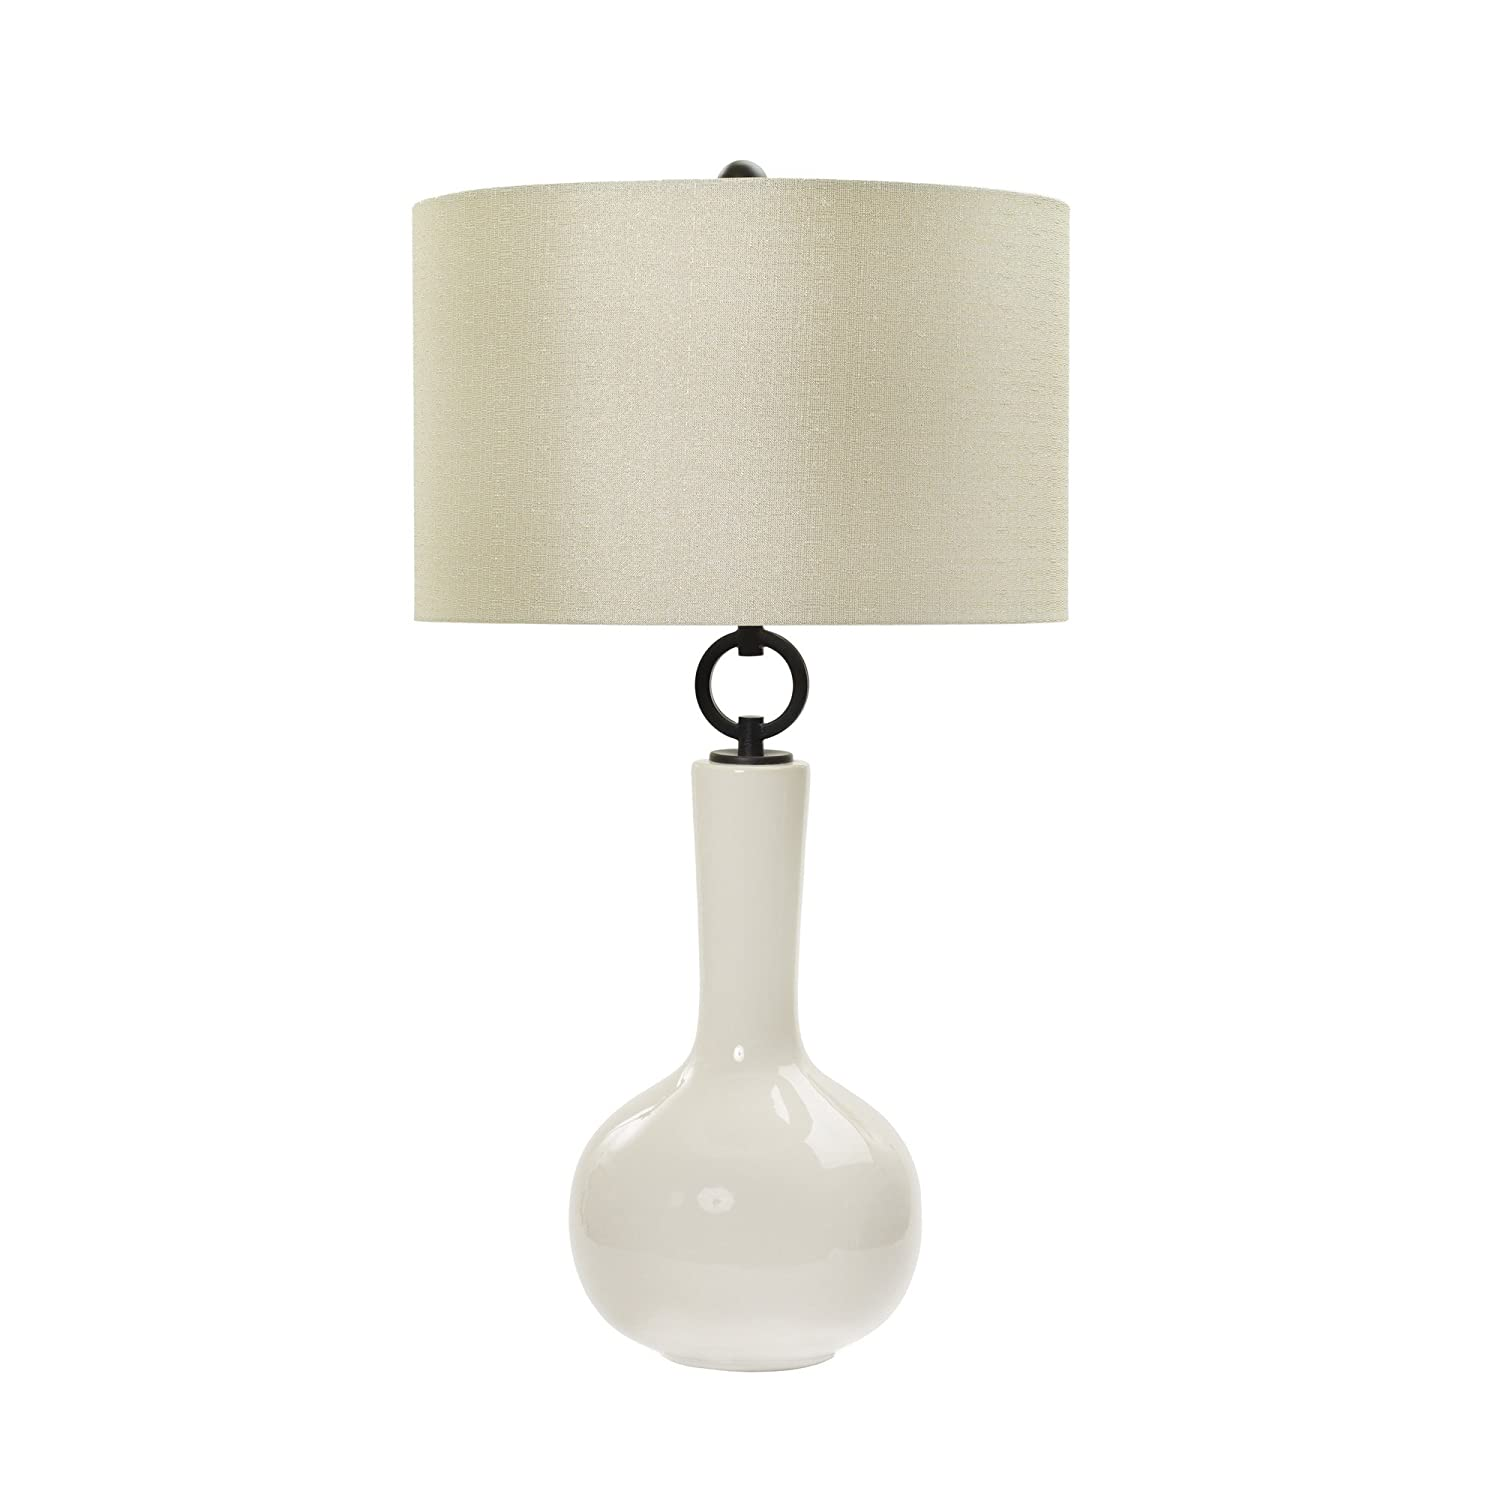 m.r Clean White 30 lamp and shade W-MR8911WHT Ceramic Table Lamp